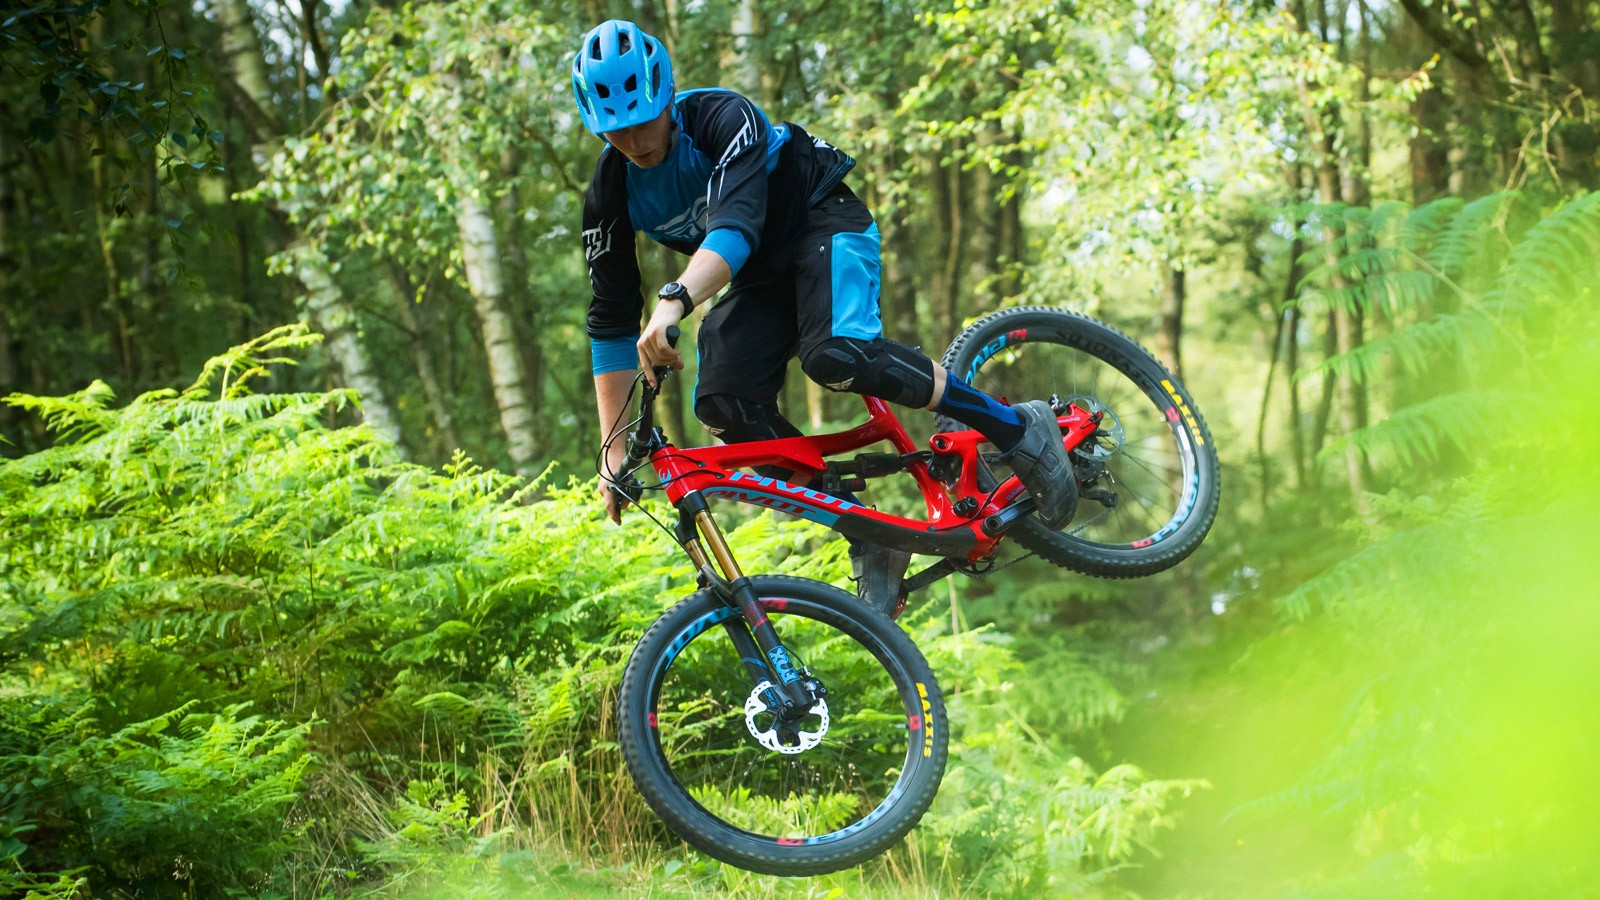 With 170mm travel, the Firebird is aimed at rowdy enduro courses and bike parks